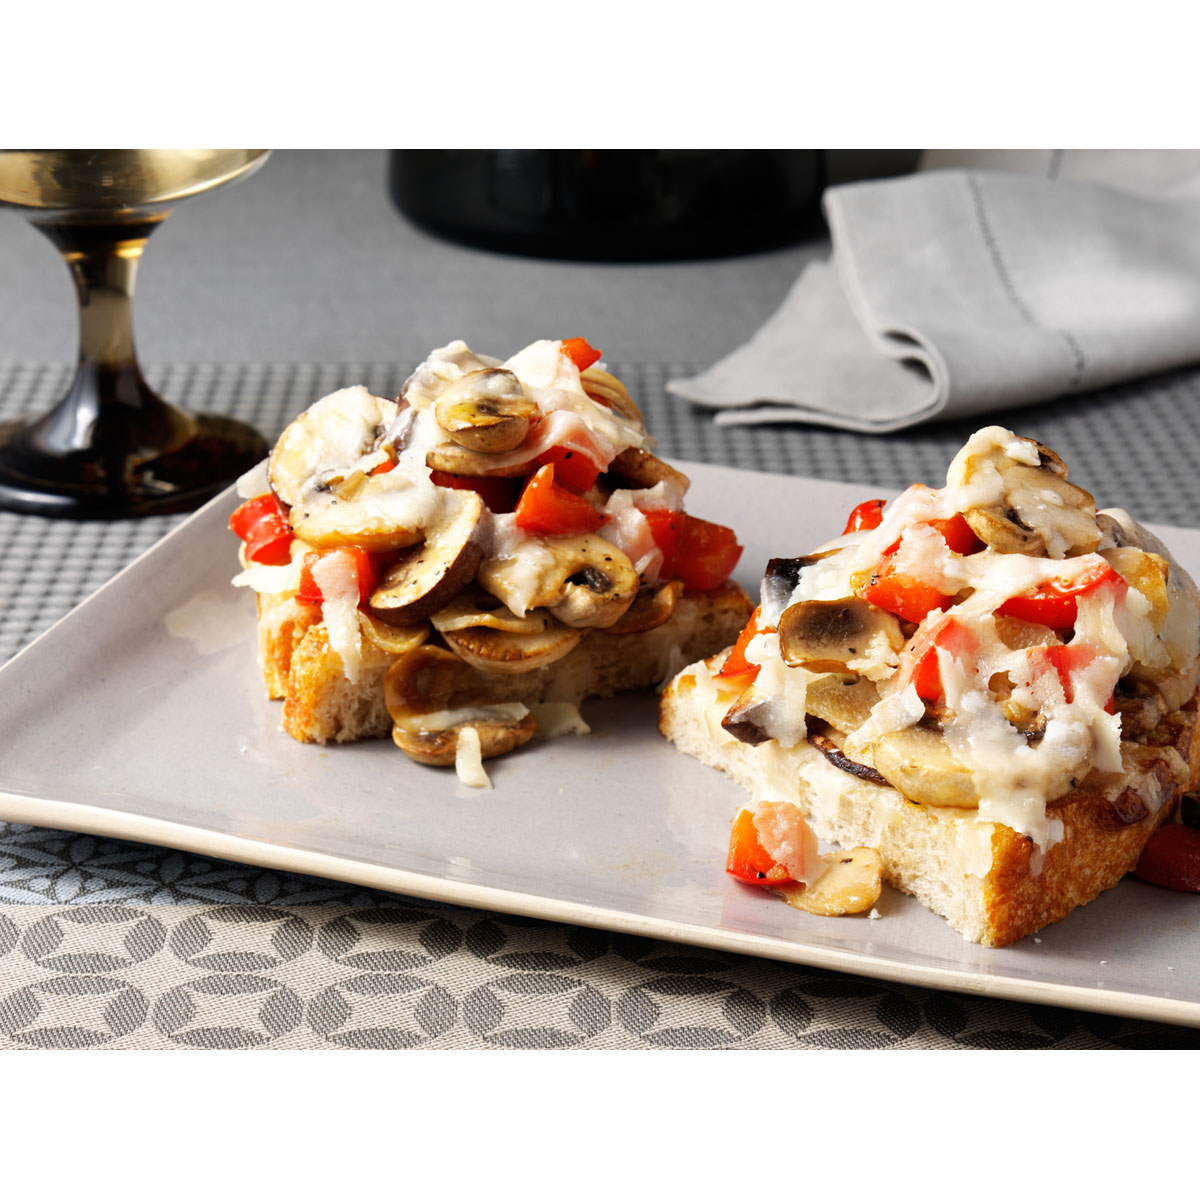 Bruschetta with Skillet Seared Mushrooms and Grana Padano